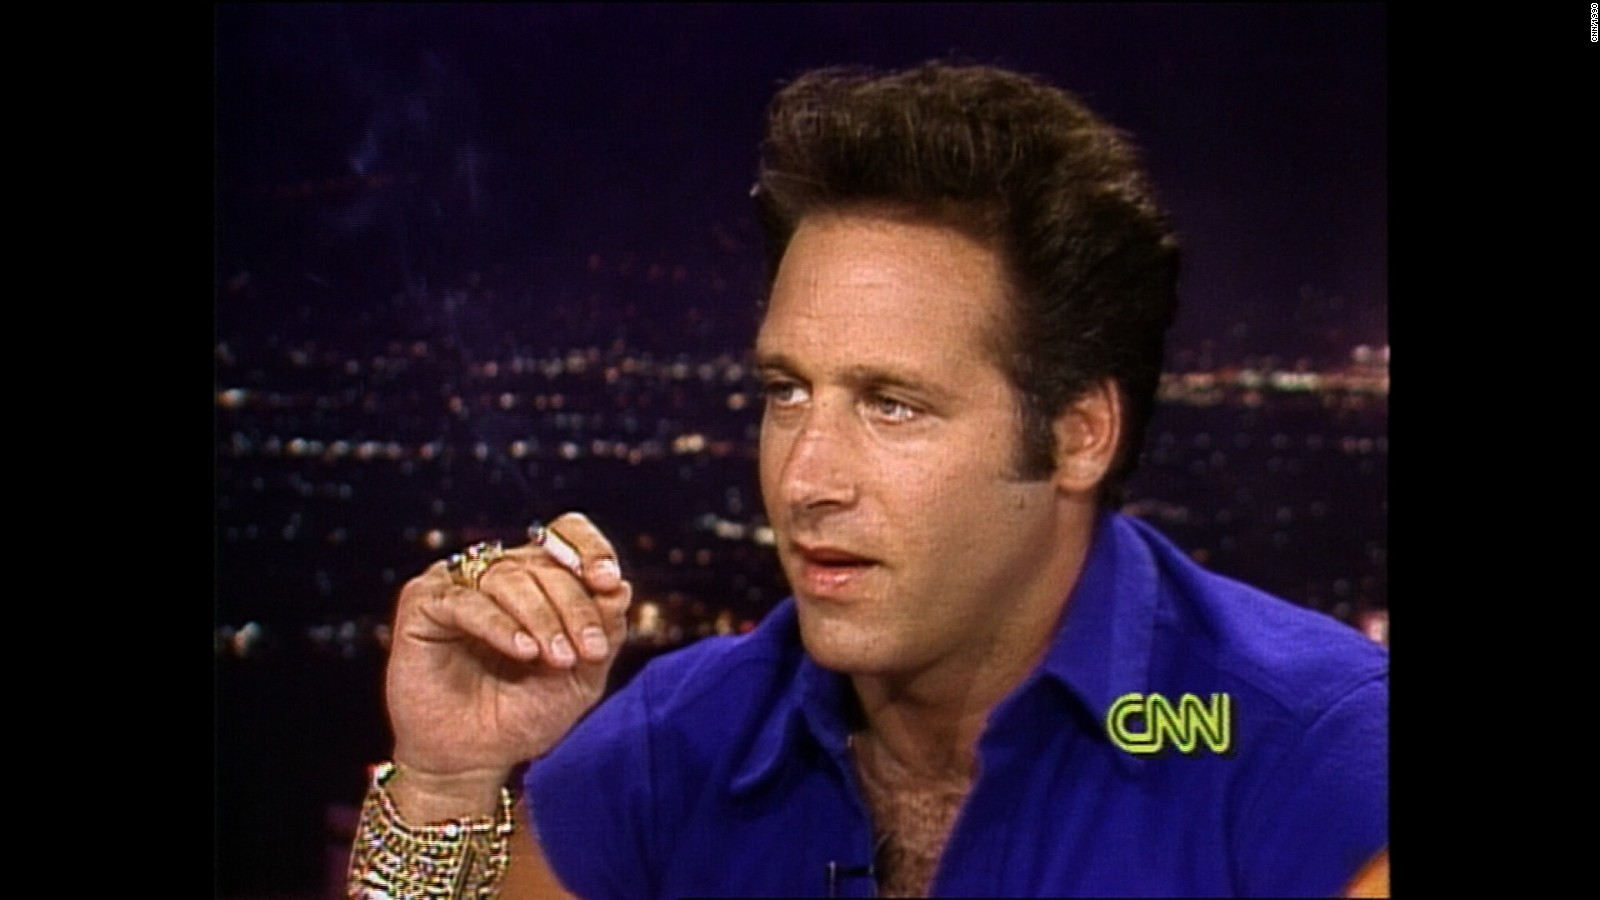 andrew dice clay wiki